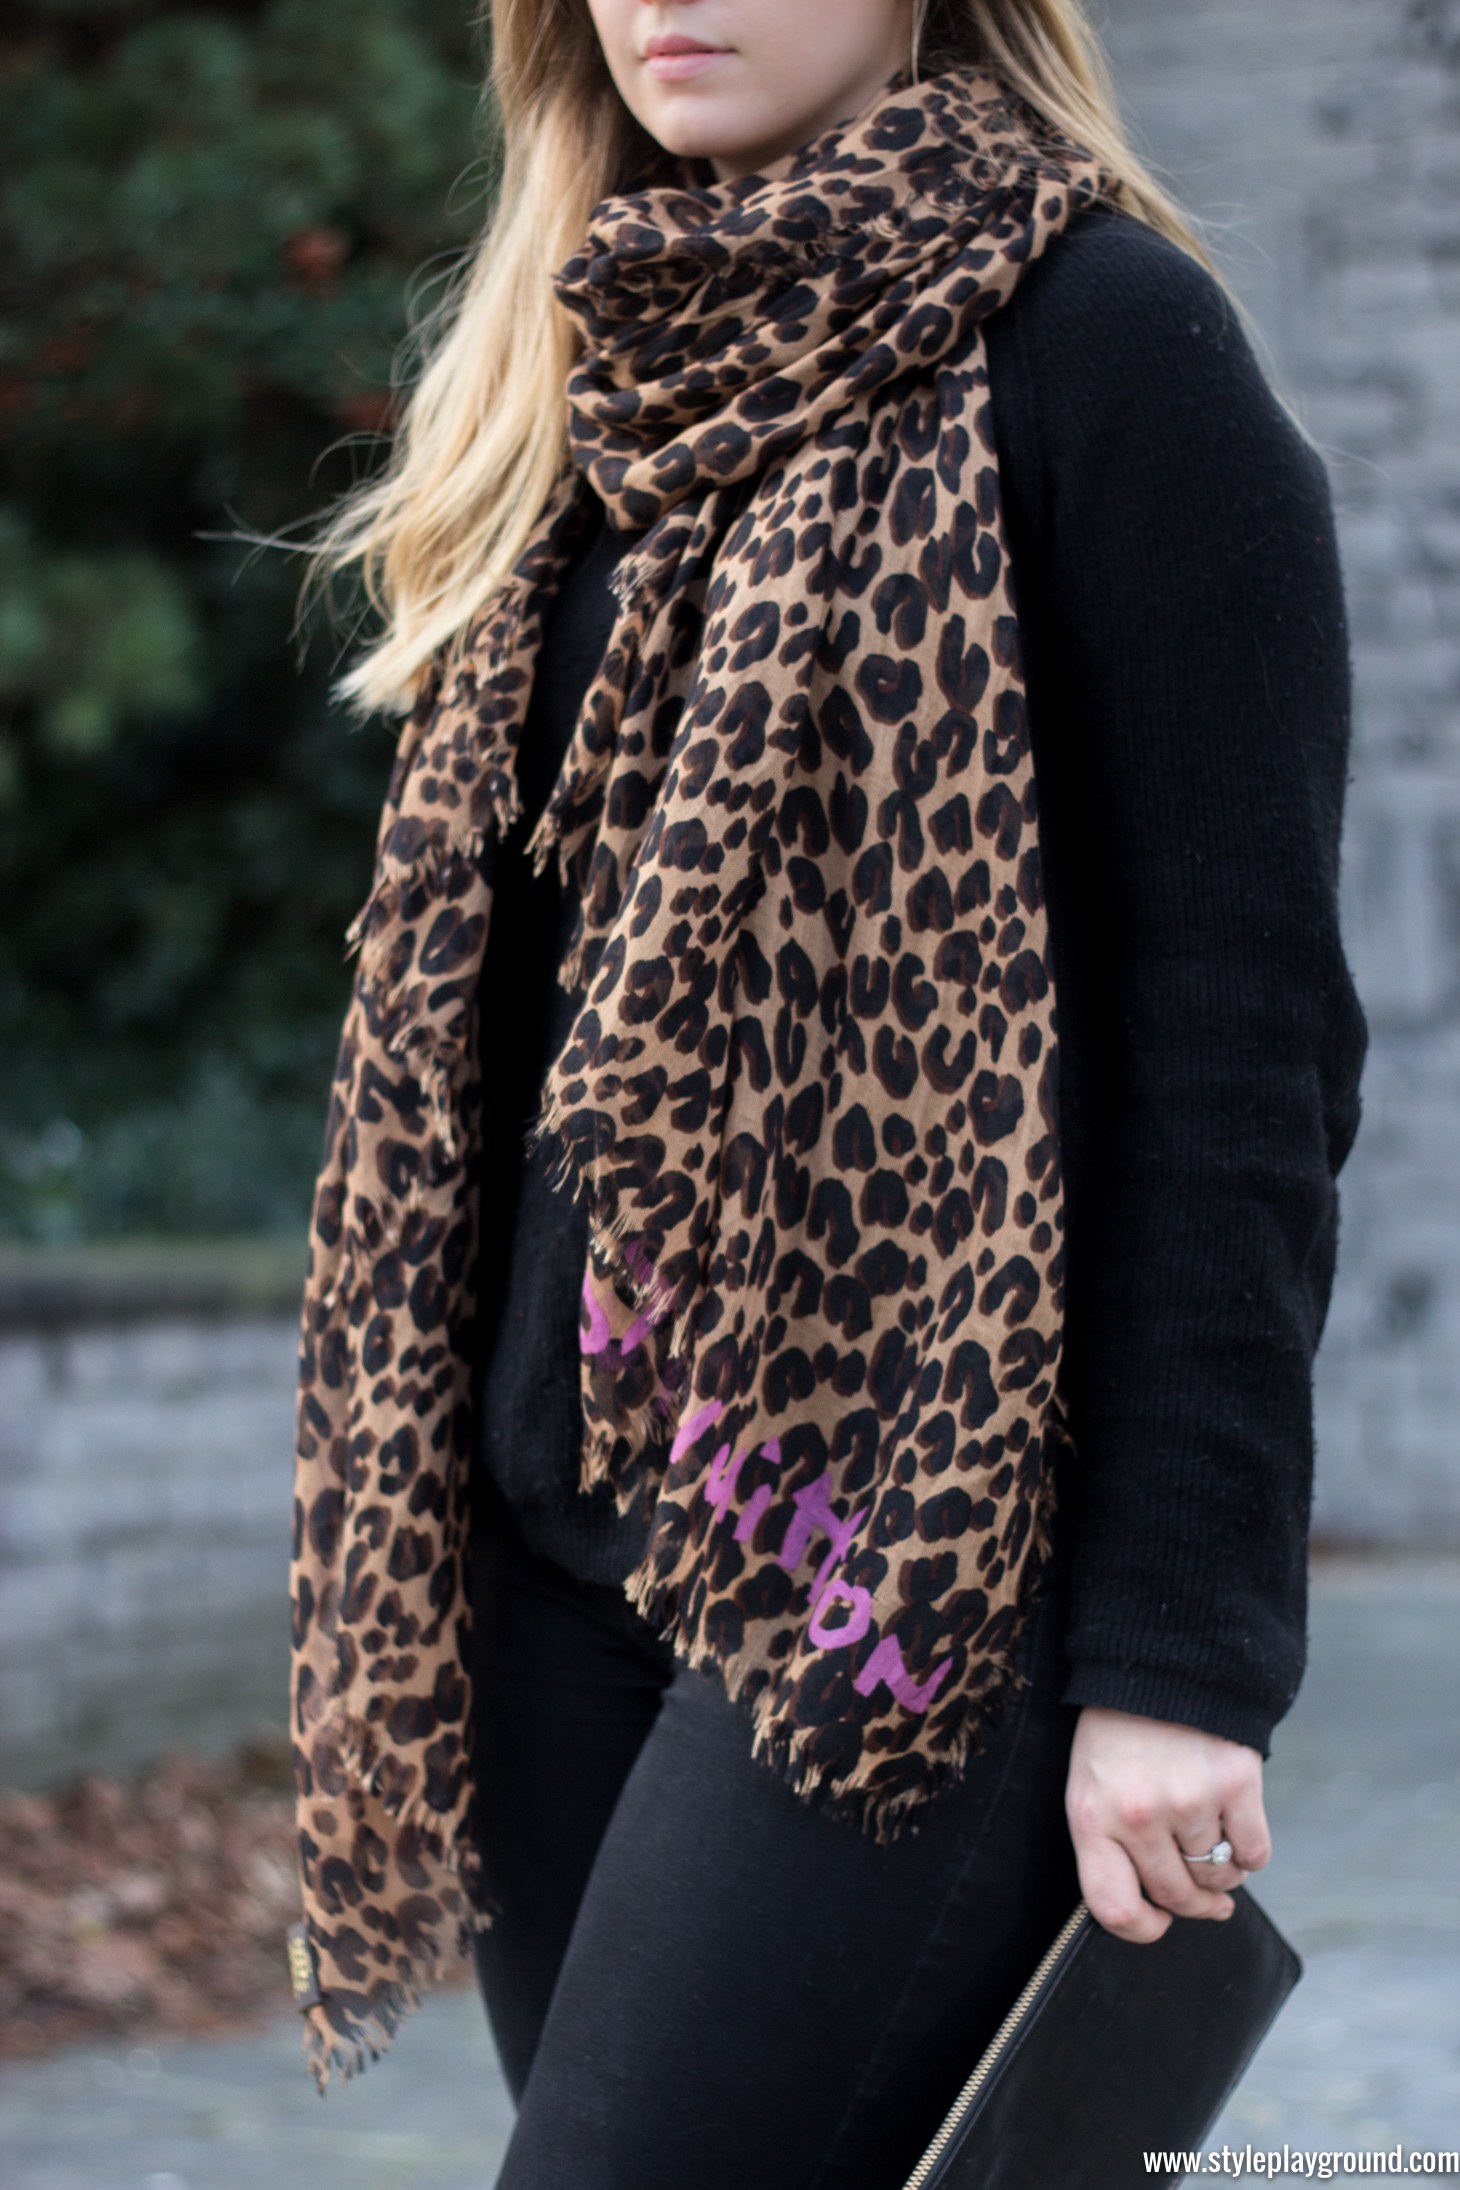 Louis Vuitton scarf, Bash sweater, American Eagle jeans, Whistles clutch via www.styleplayground.com